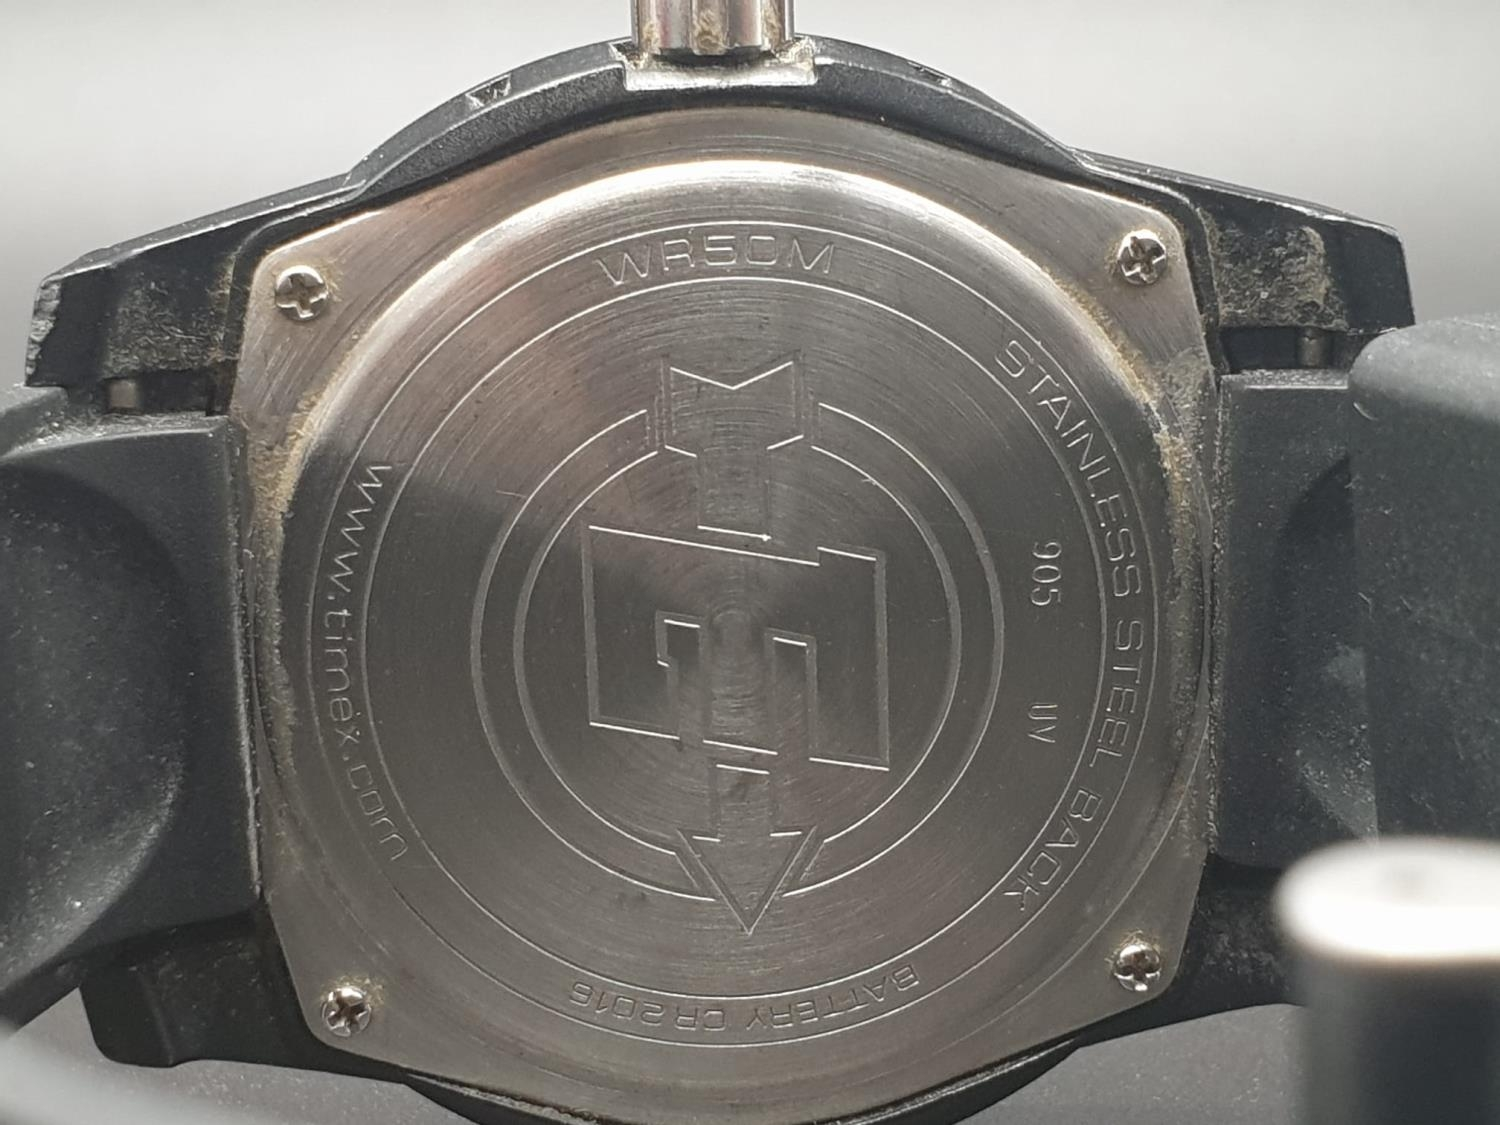 Timex Expedition Watch. Black rubber strap. Black dial. As found. - Image 8 of 9